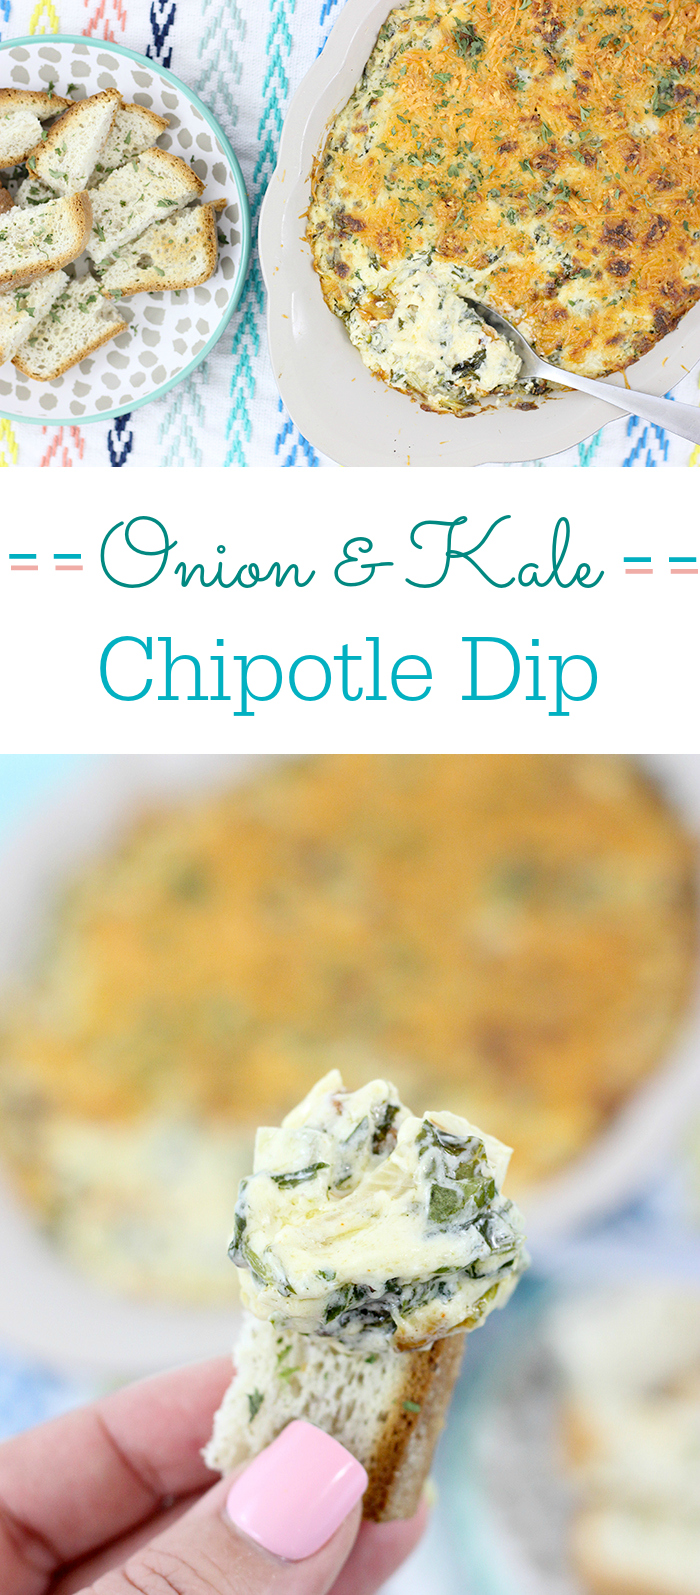 Smokey Onion and Kale Dip with a delicious secret ingredient. This dip recipe will knock your socks off.